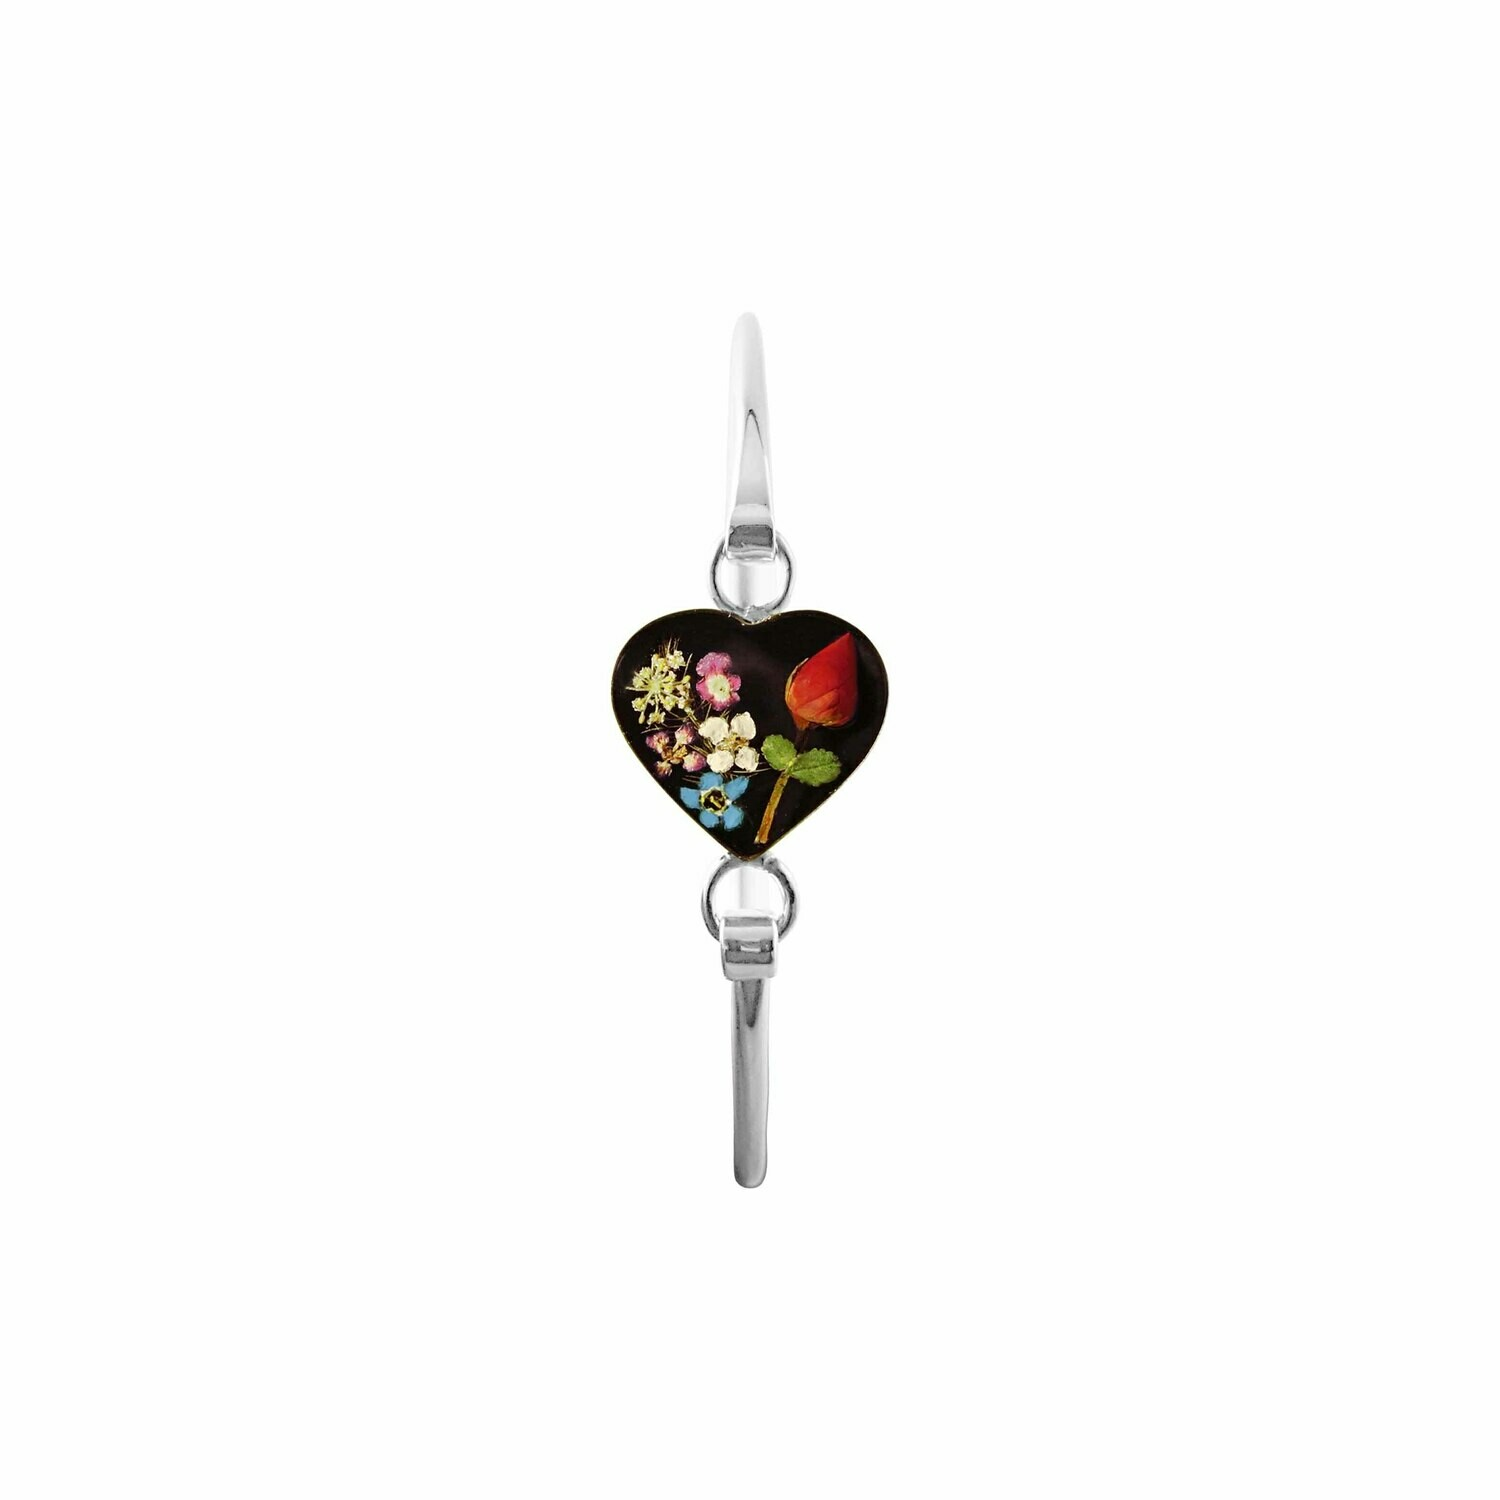 Rose & Mixed Flowers Heart Bracelet, Black Background.